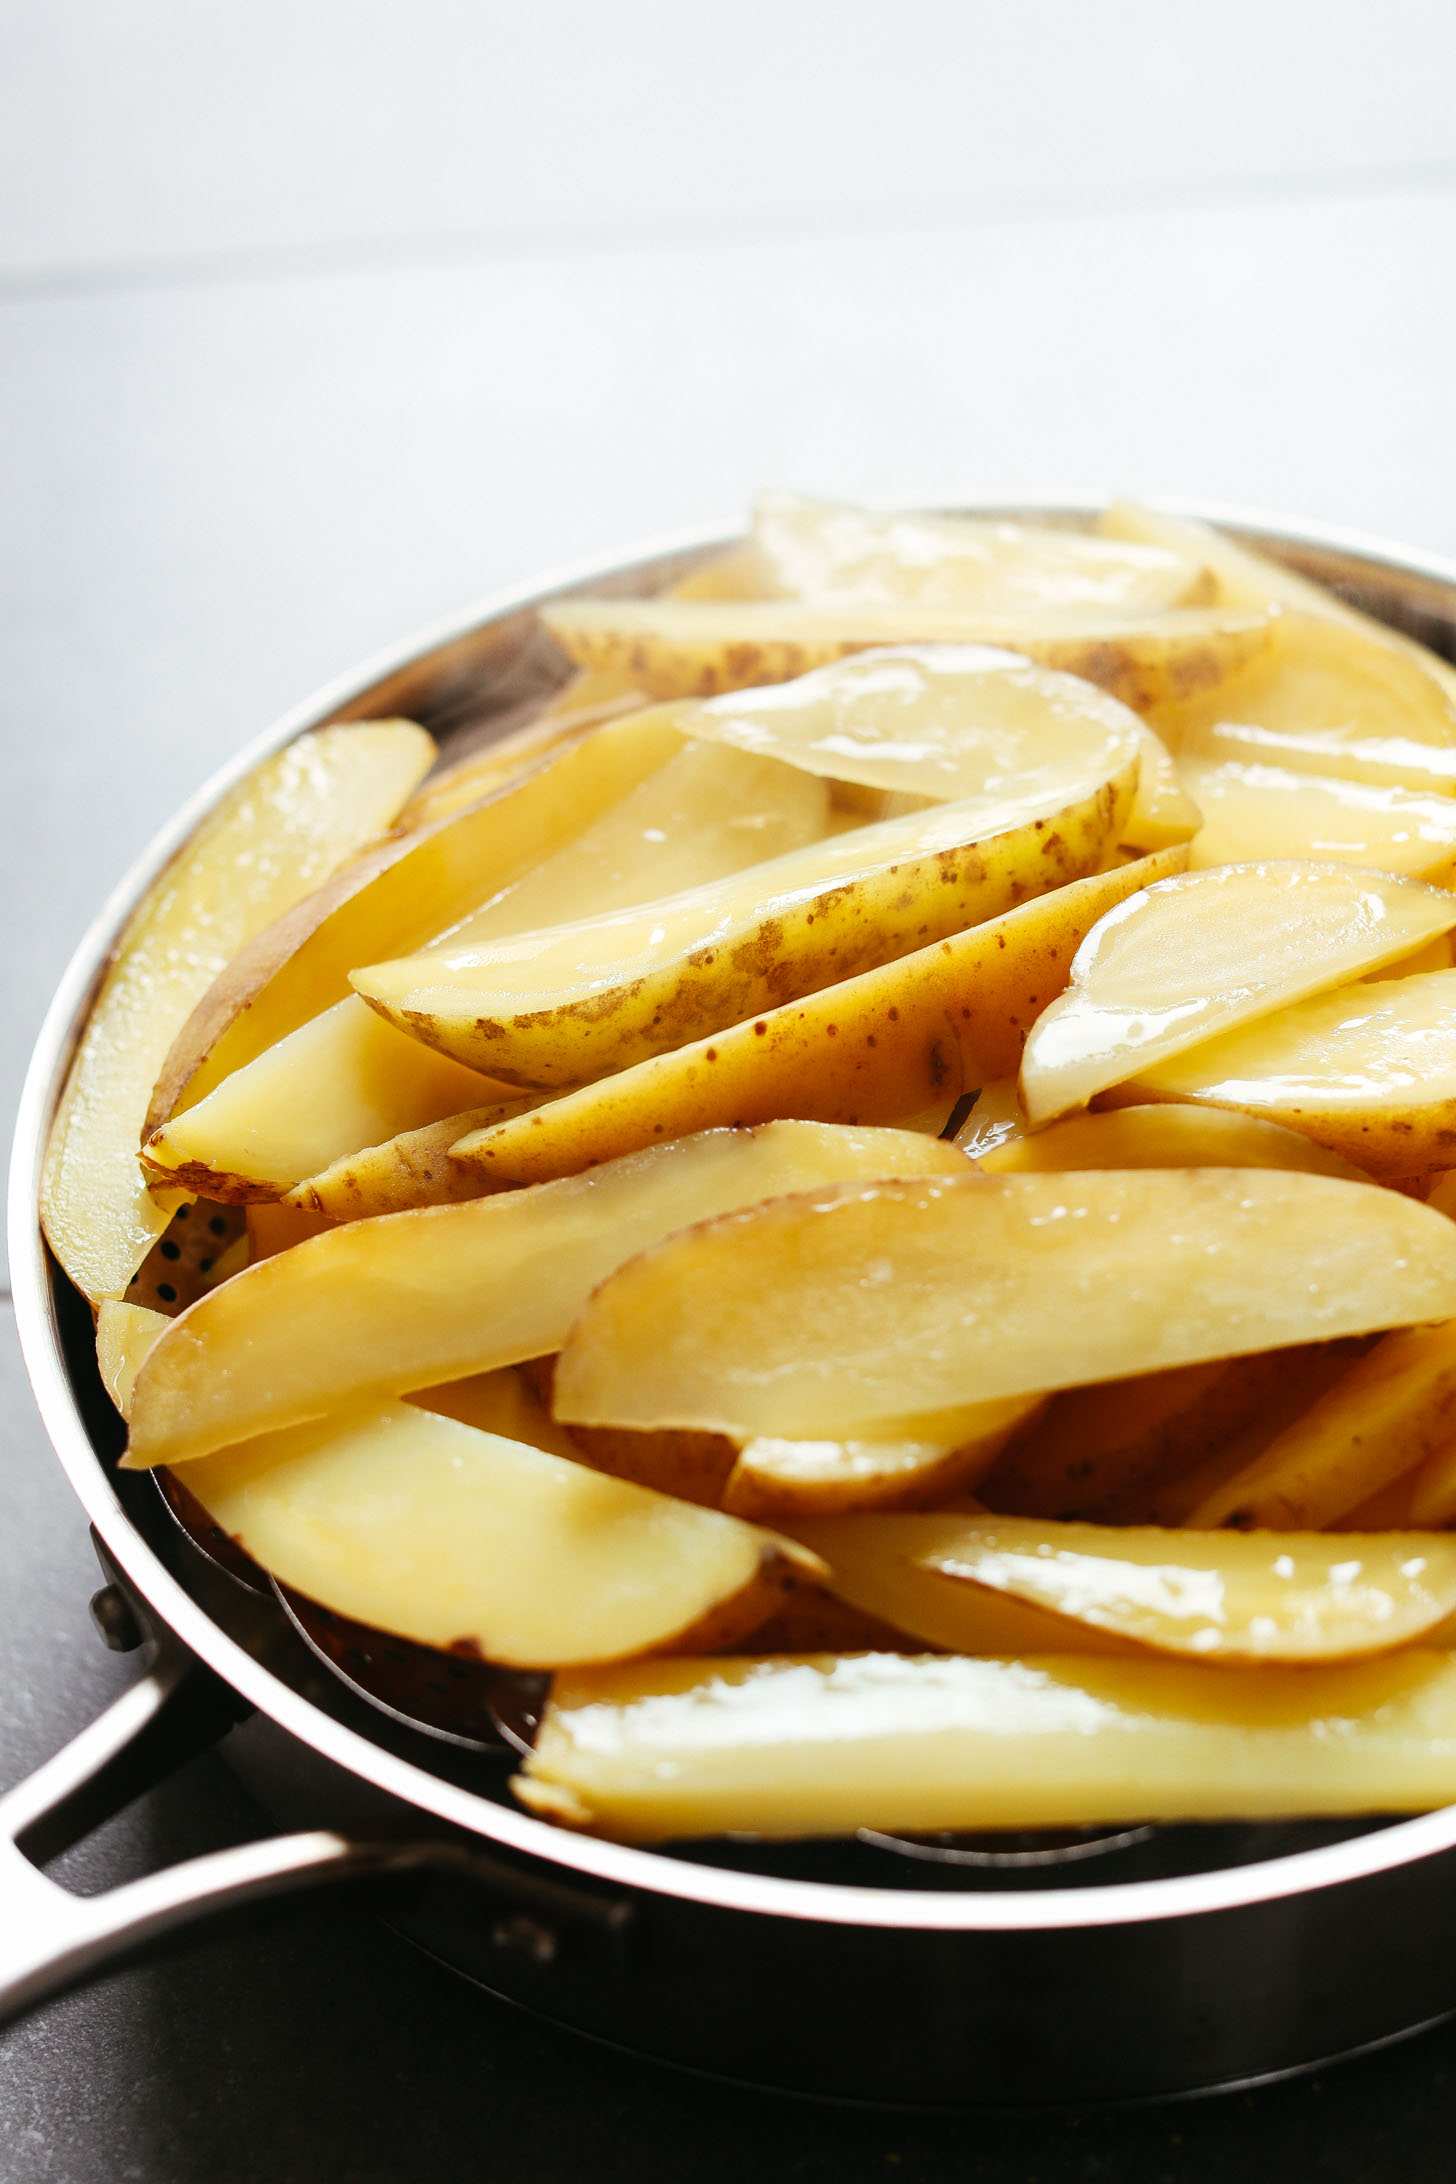 Using a steam basket over a pan to soften potato wedges